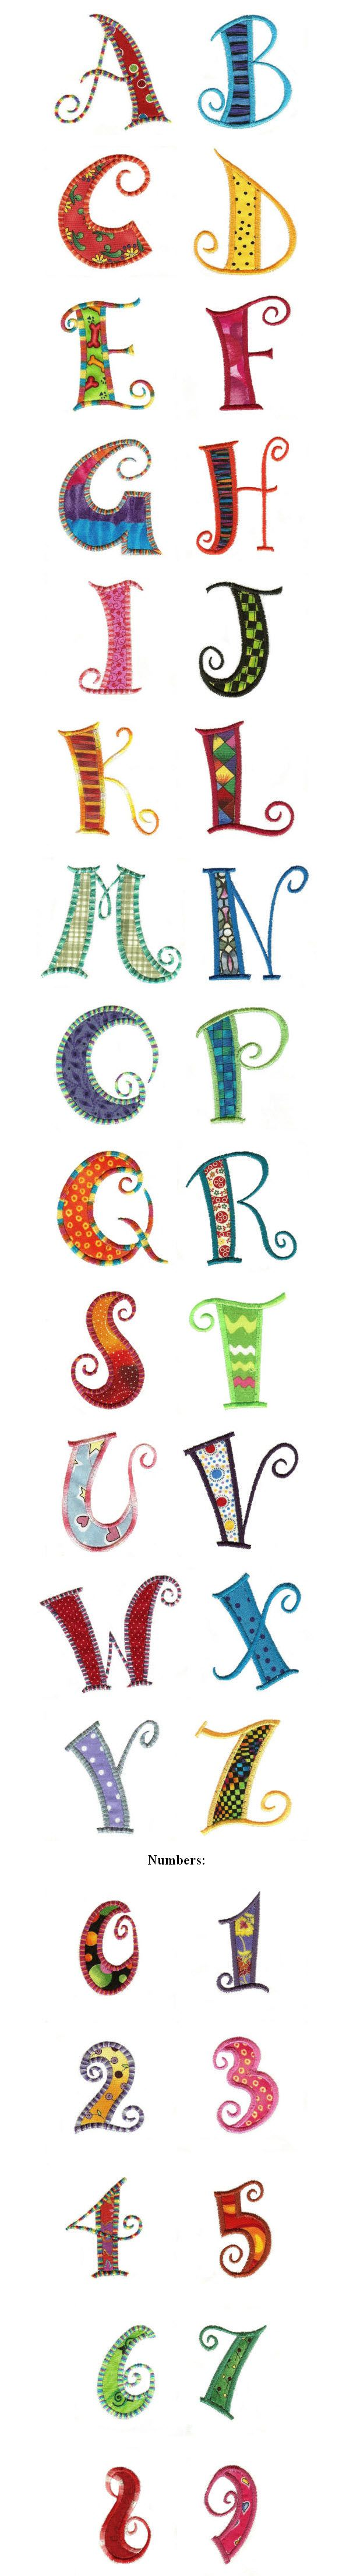 Curly Q Alphabet